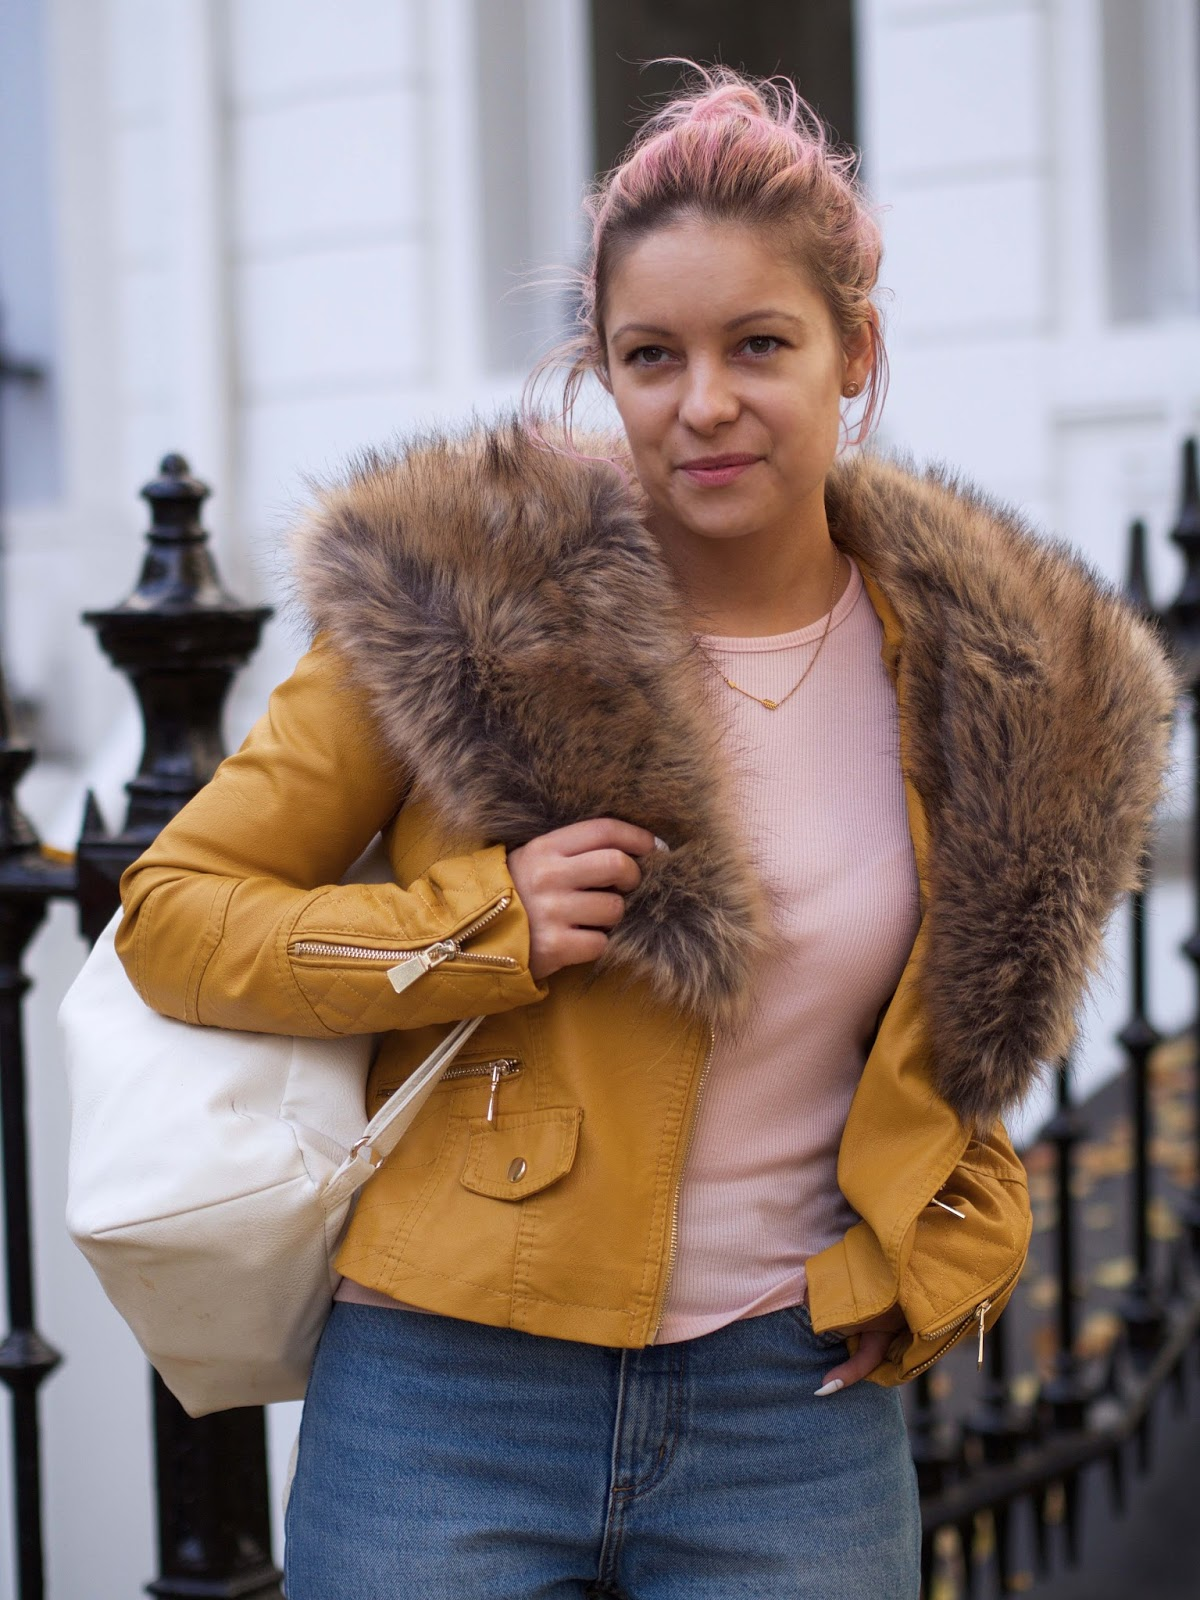 bows boutique camel jacket with fur collar